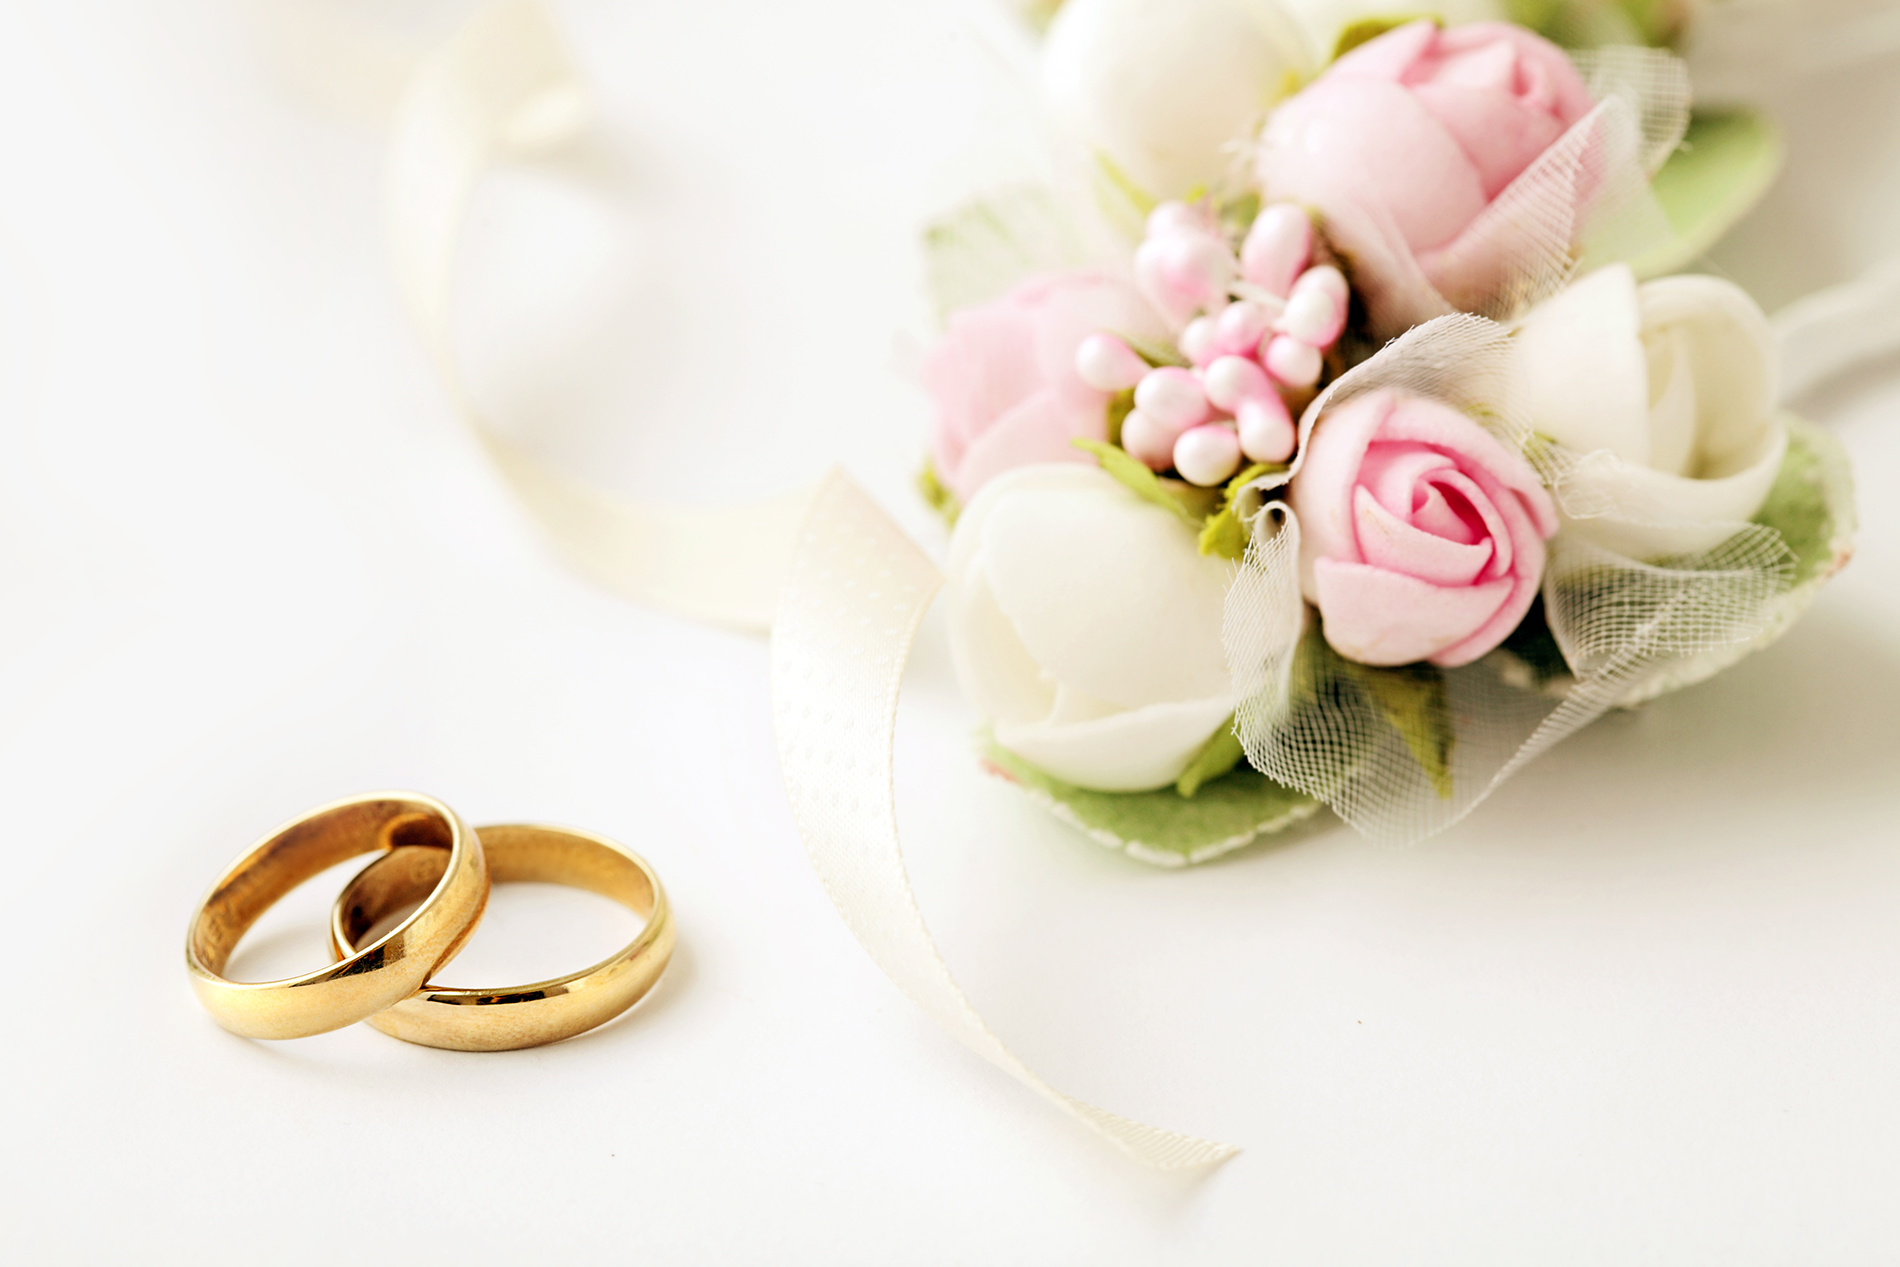 Gold rings and roses 53459